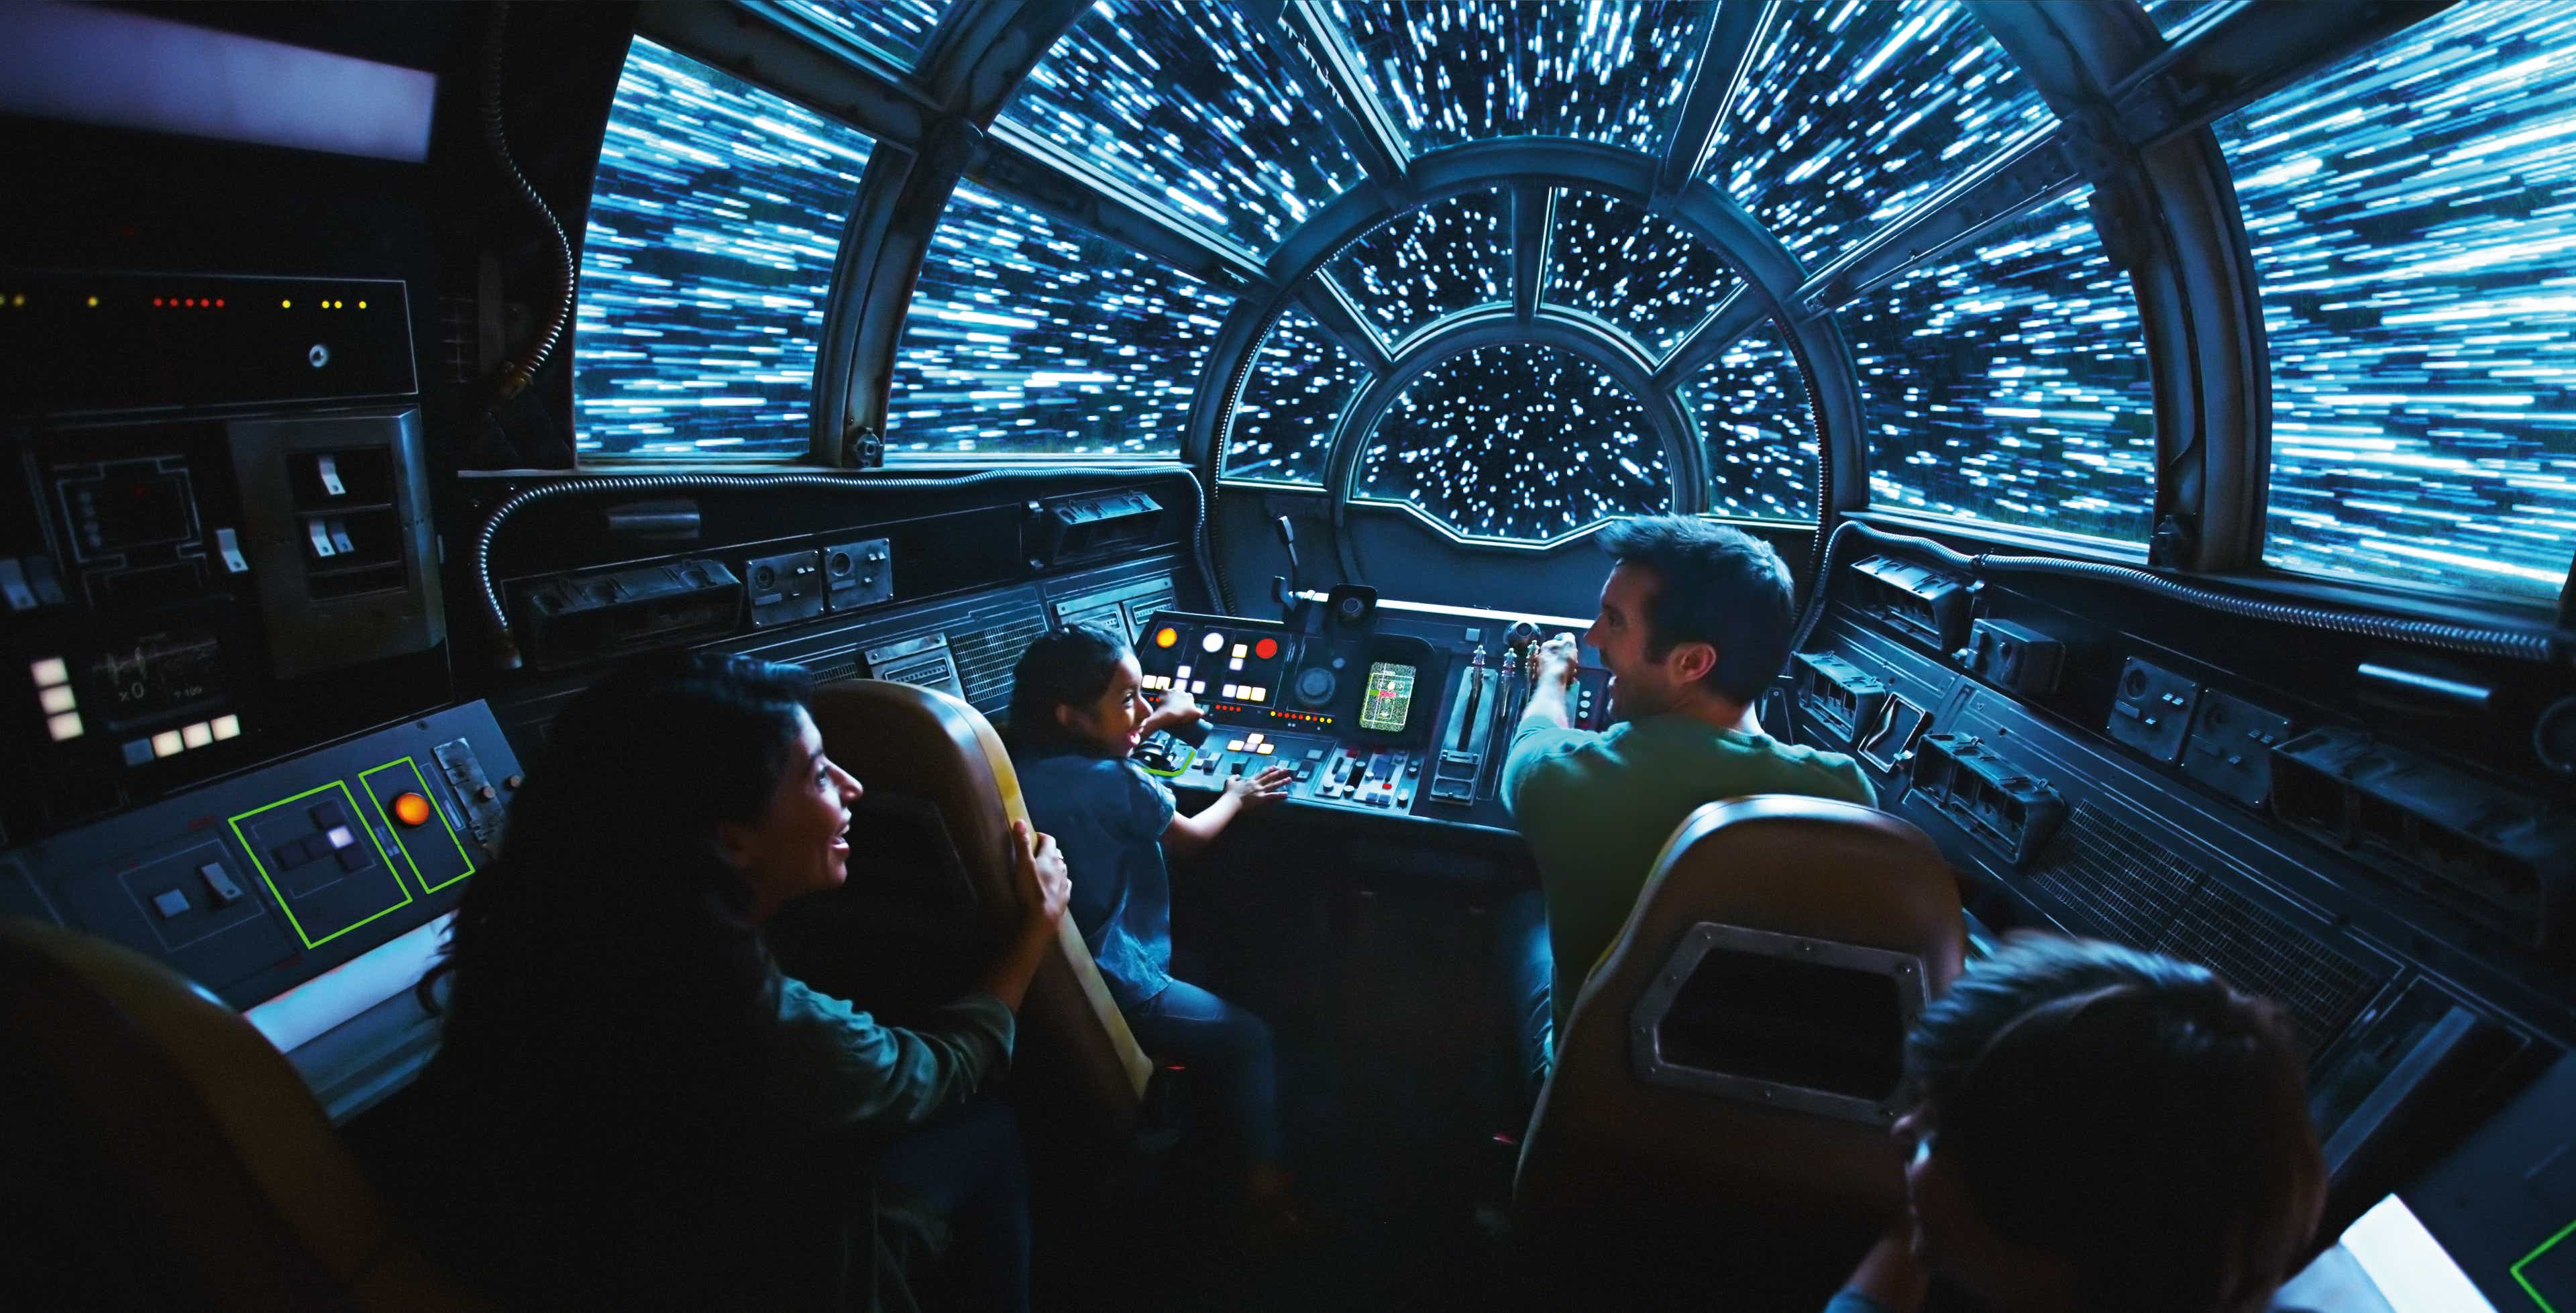 When Star Wars: Galaxy's Edge is opening at Disneyland